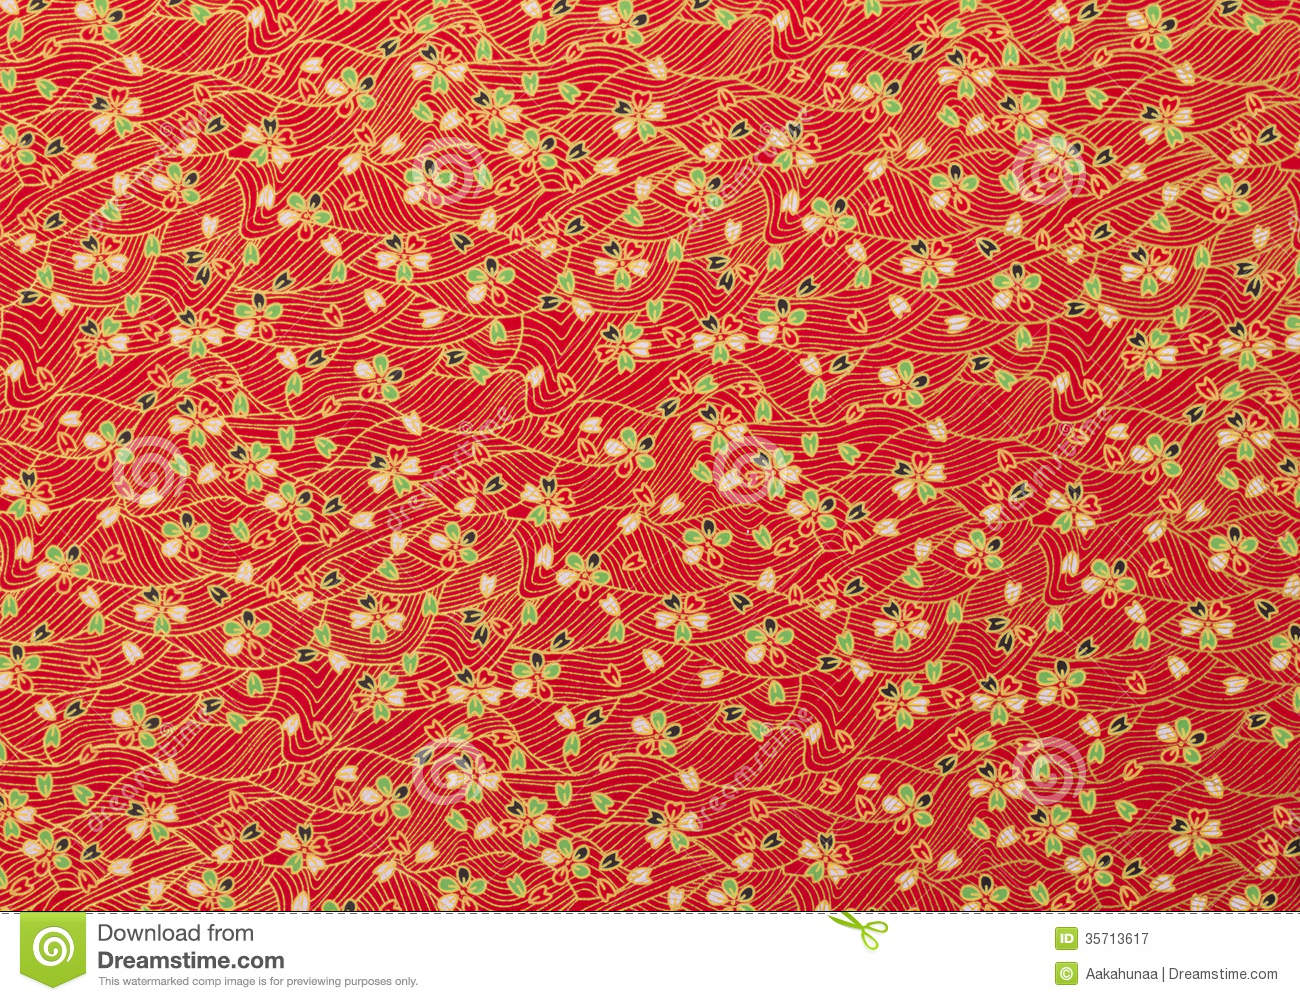 Fall Flowers Background Wallpaper Background Paper Flowers Design Royalty Free Stock